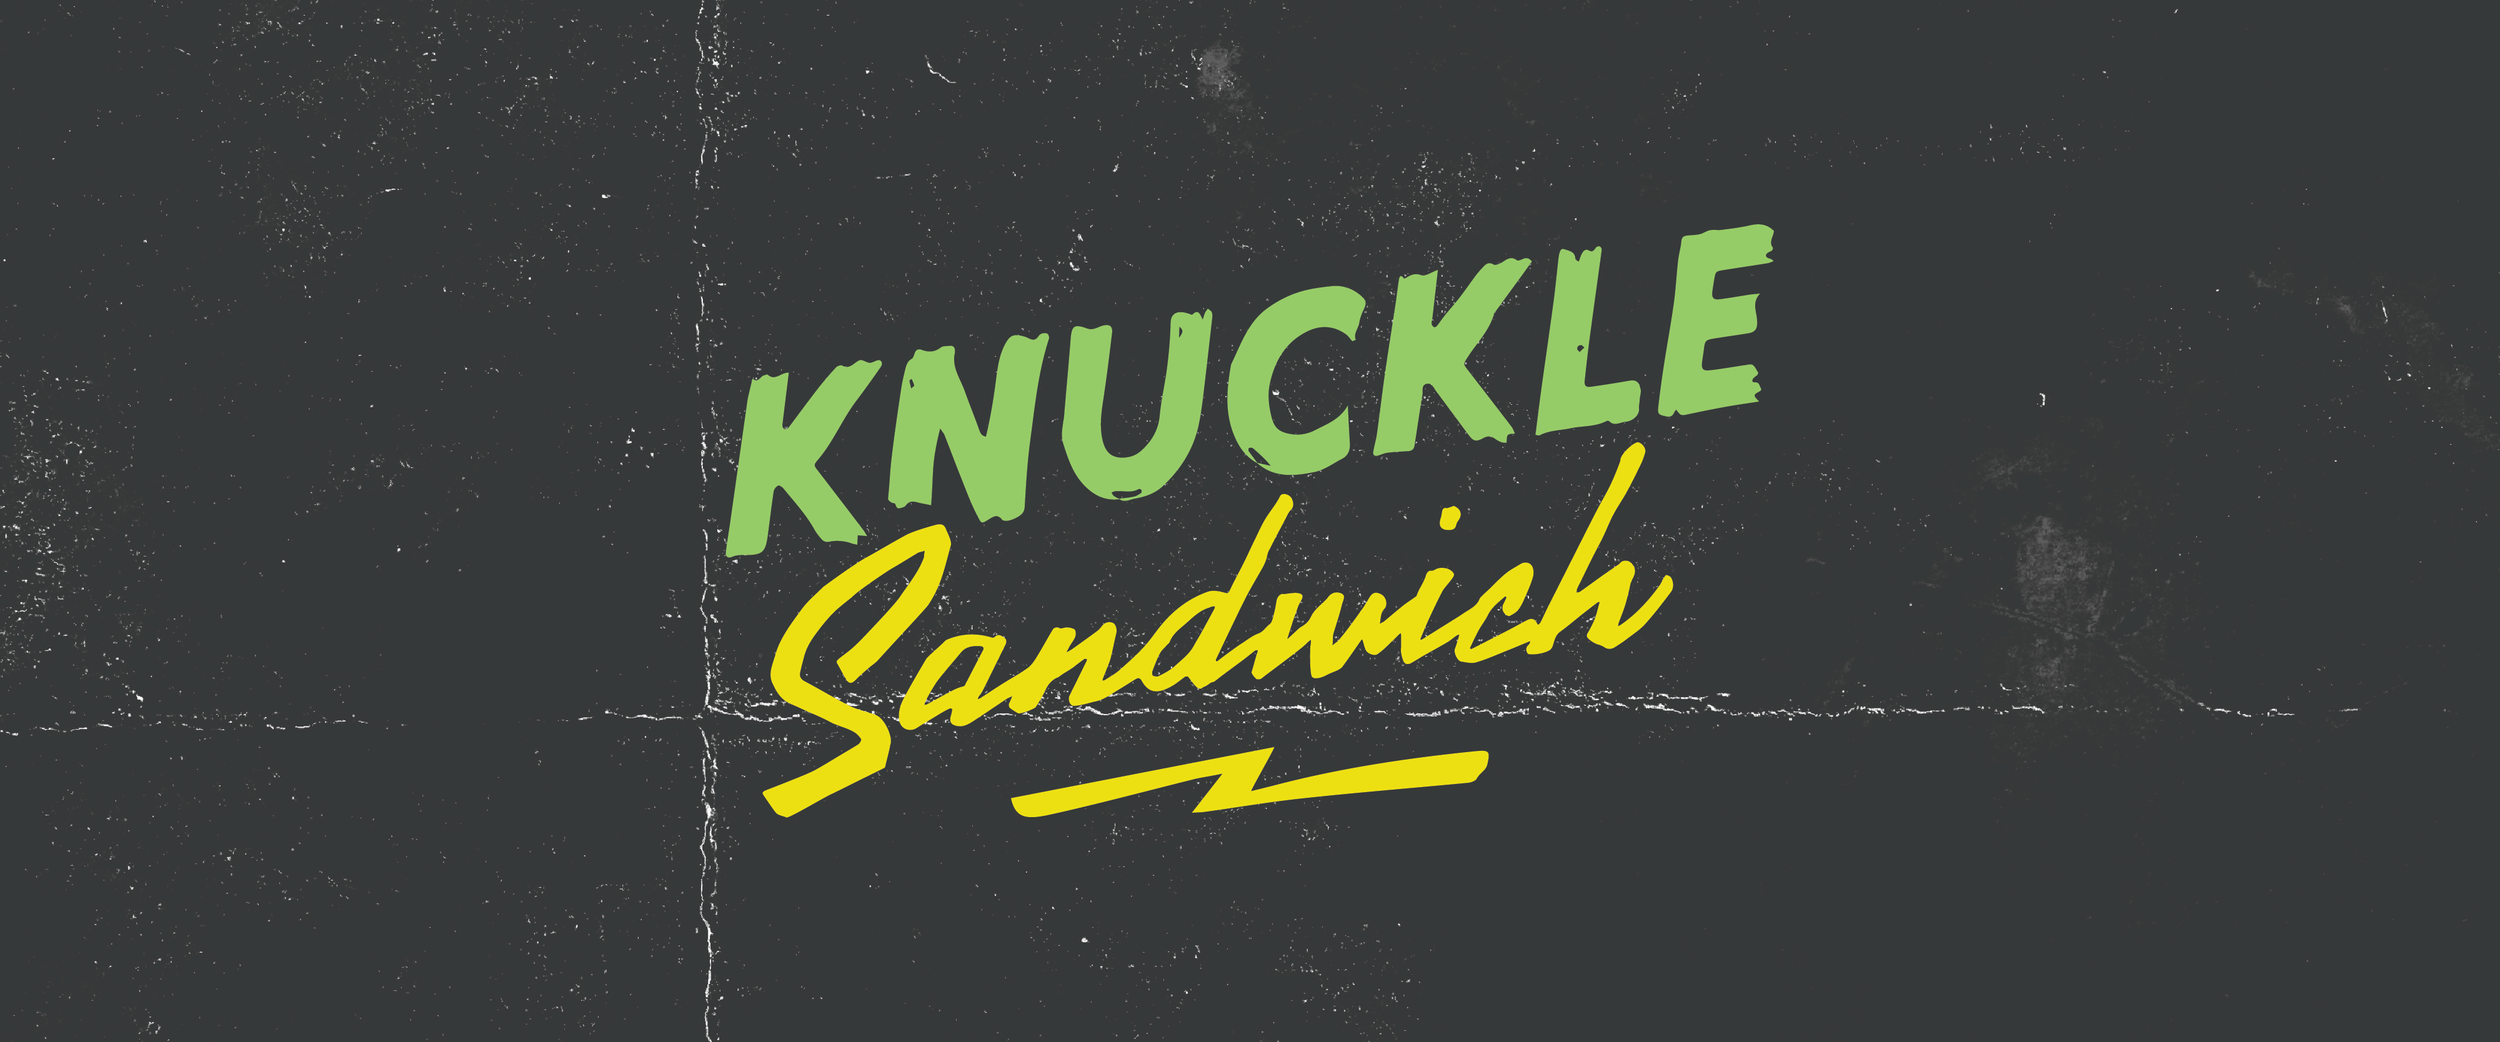 Knuckle Sandwich, self-defense for women, LGBTQ+, and sex workers / Freelance / Client: Ifn Whendy / 2018